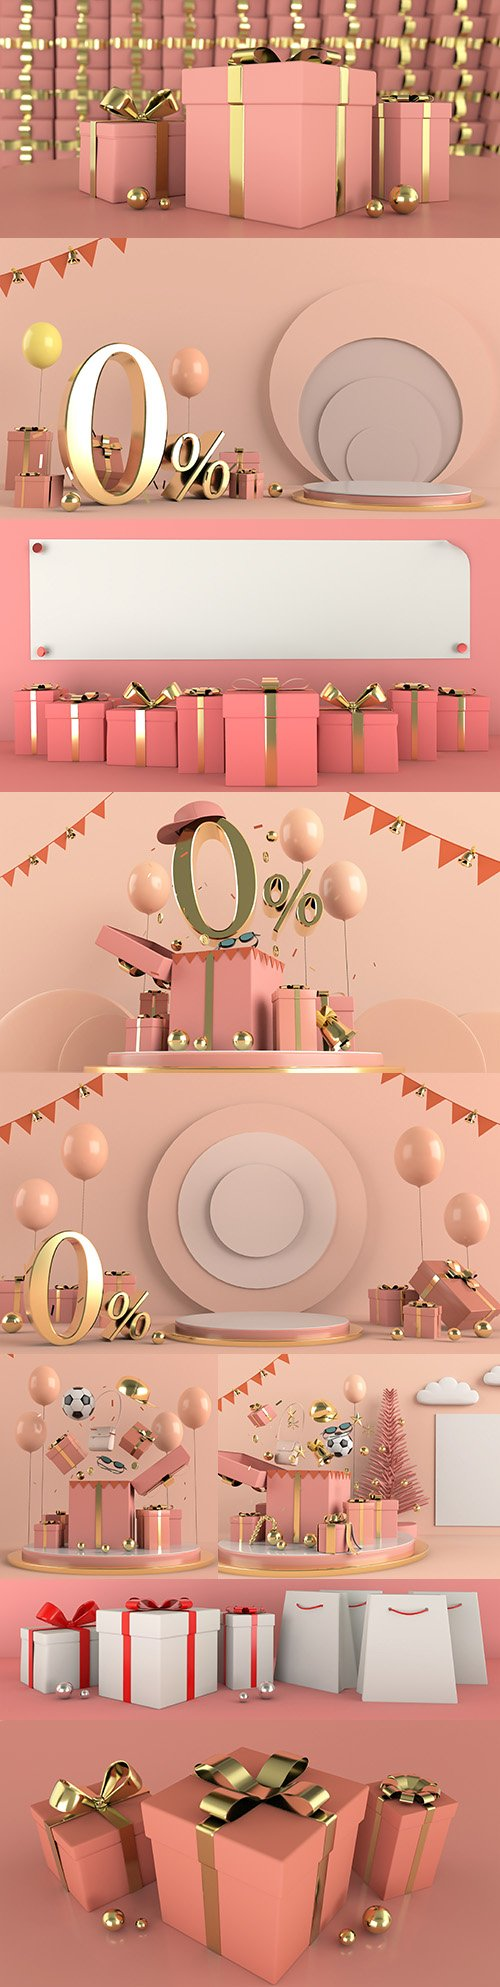 Balloons and gifts decorative holiday background